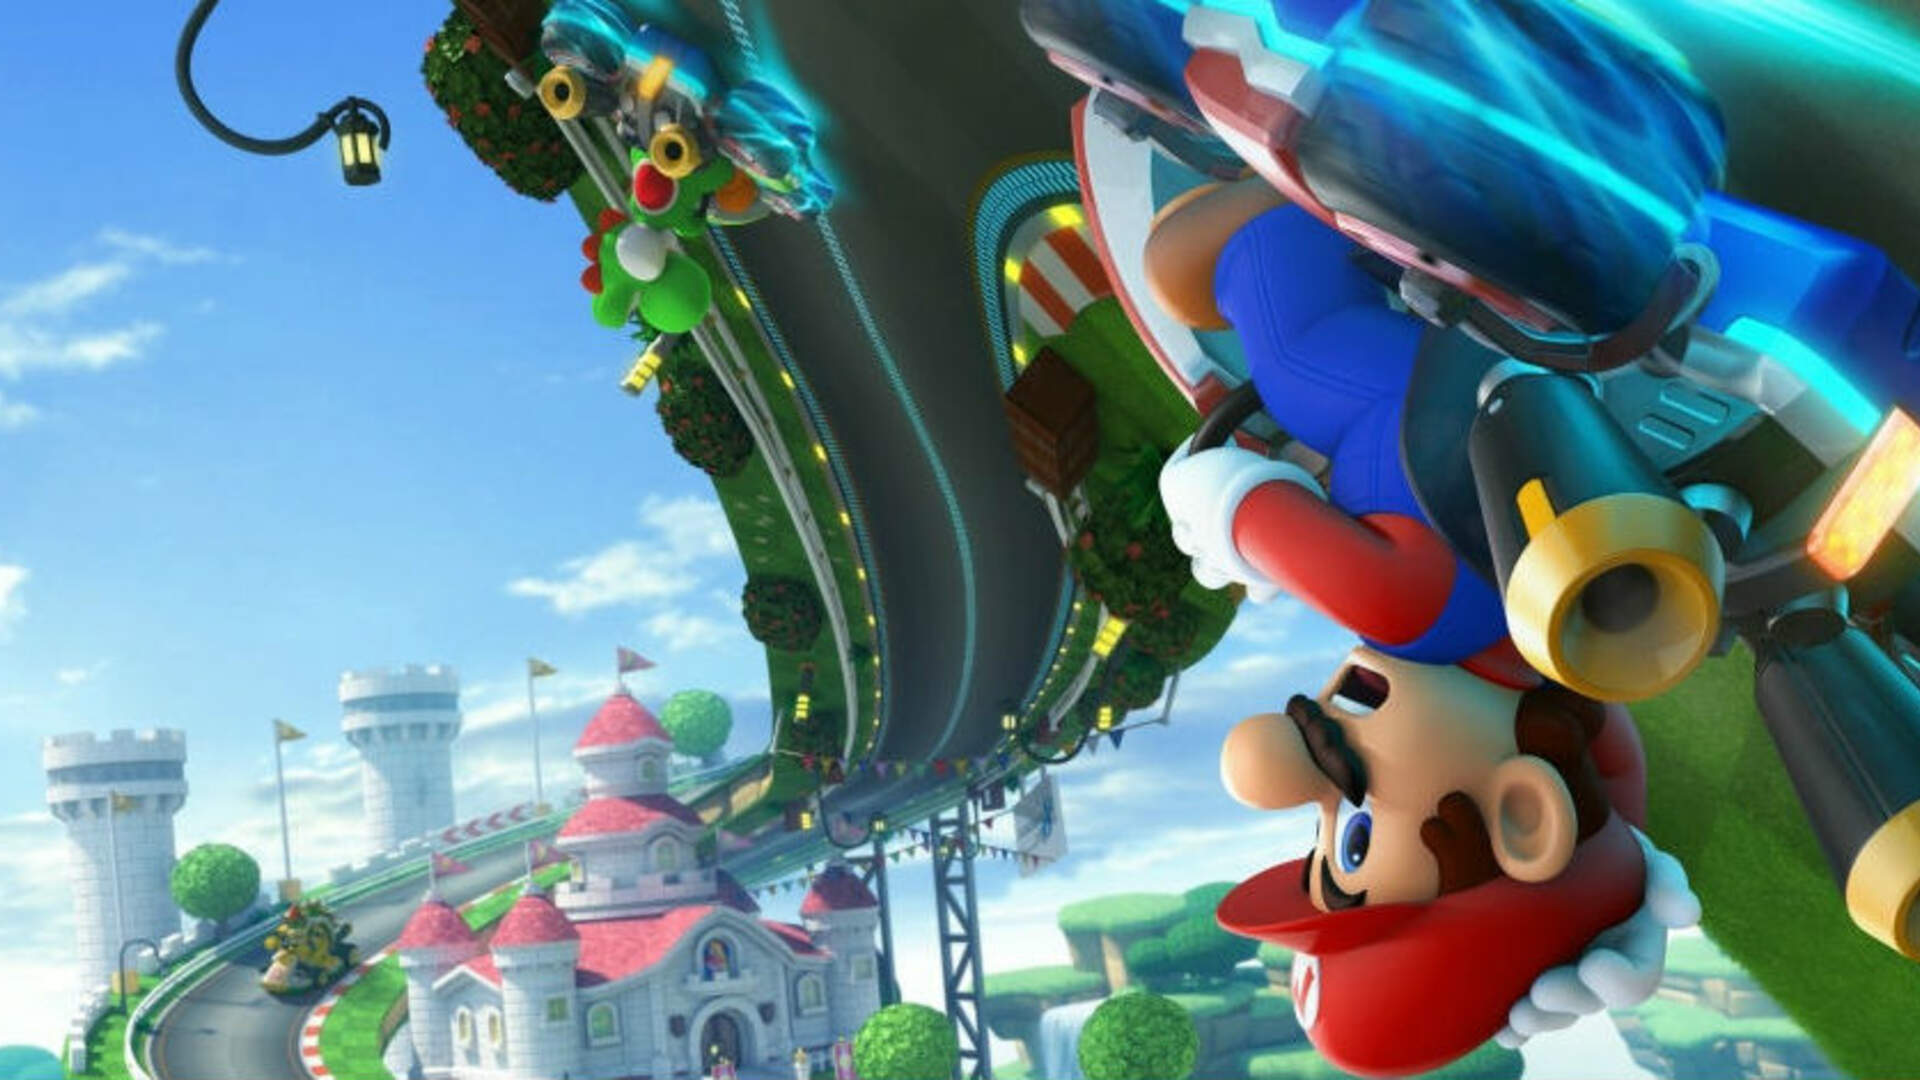 Nintendo Direct Round-Up: Little Mac, Mario Kart and More